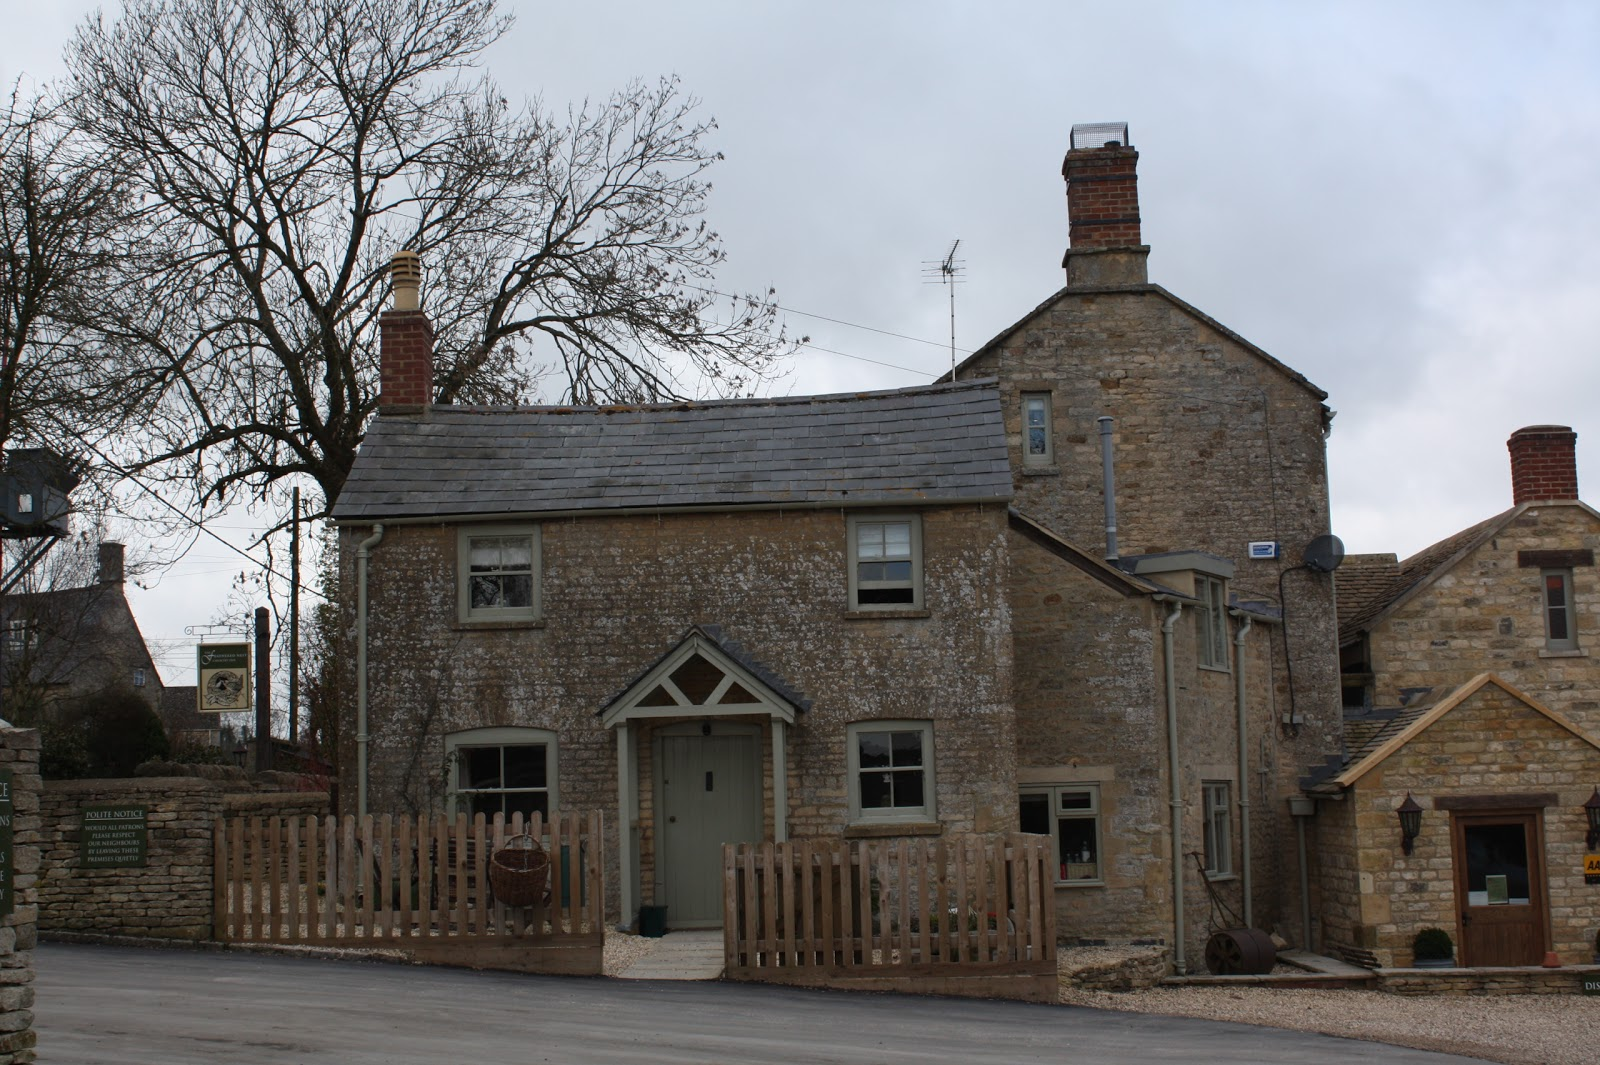 The Feathered Nest Inn, Nether Westcote